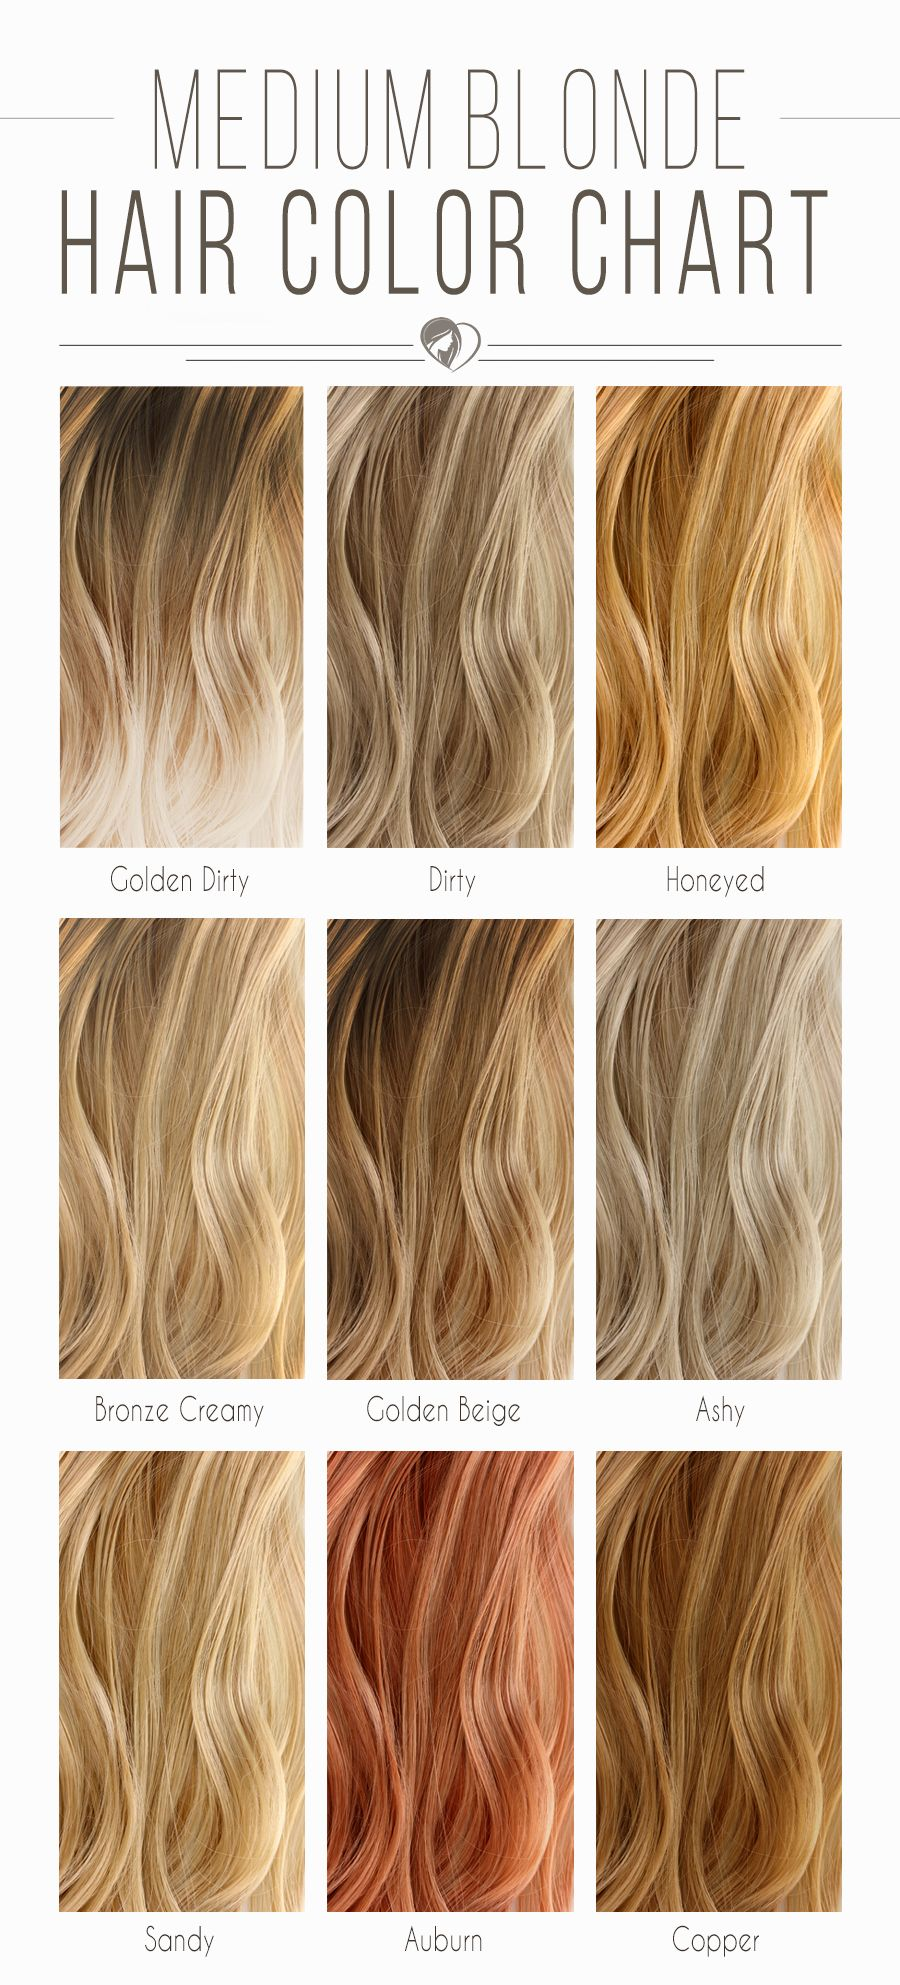 Blonde Hair Color Chart To Find The Right Shade For You Medium